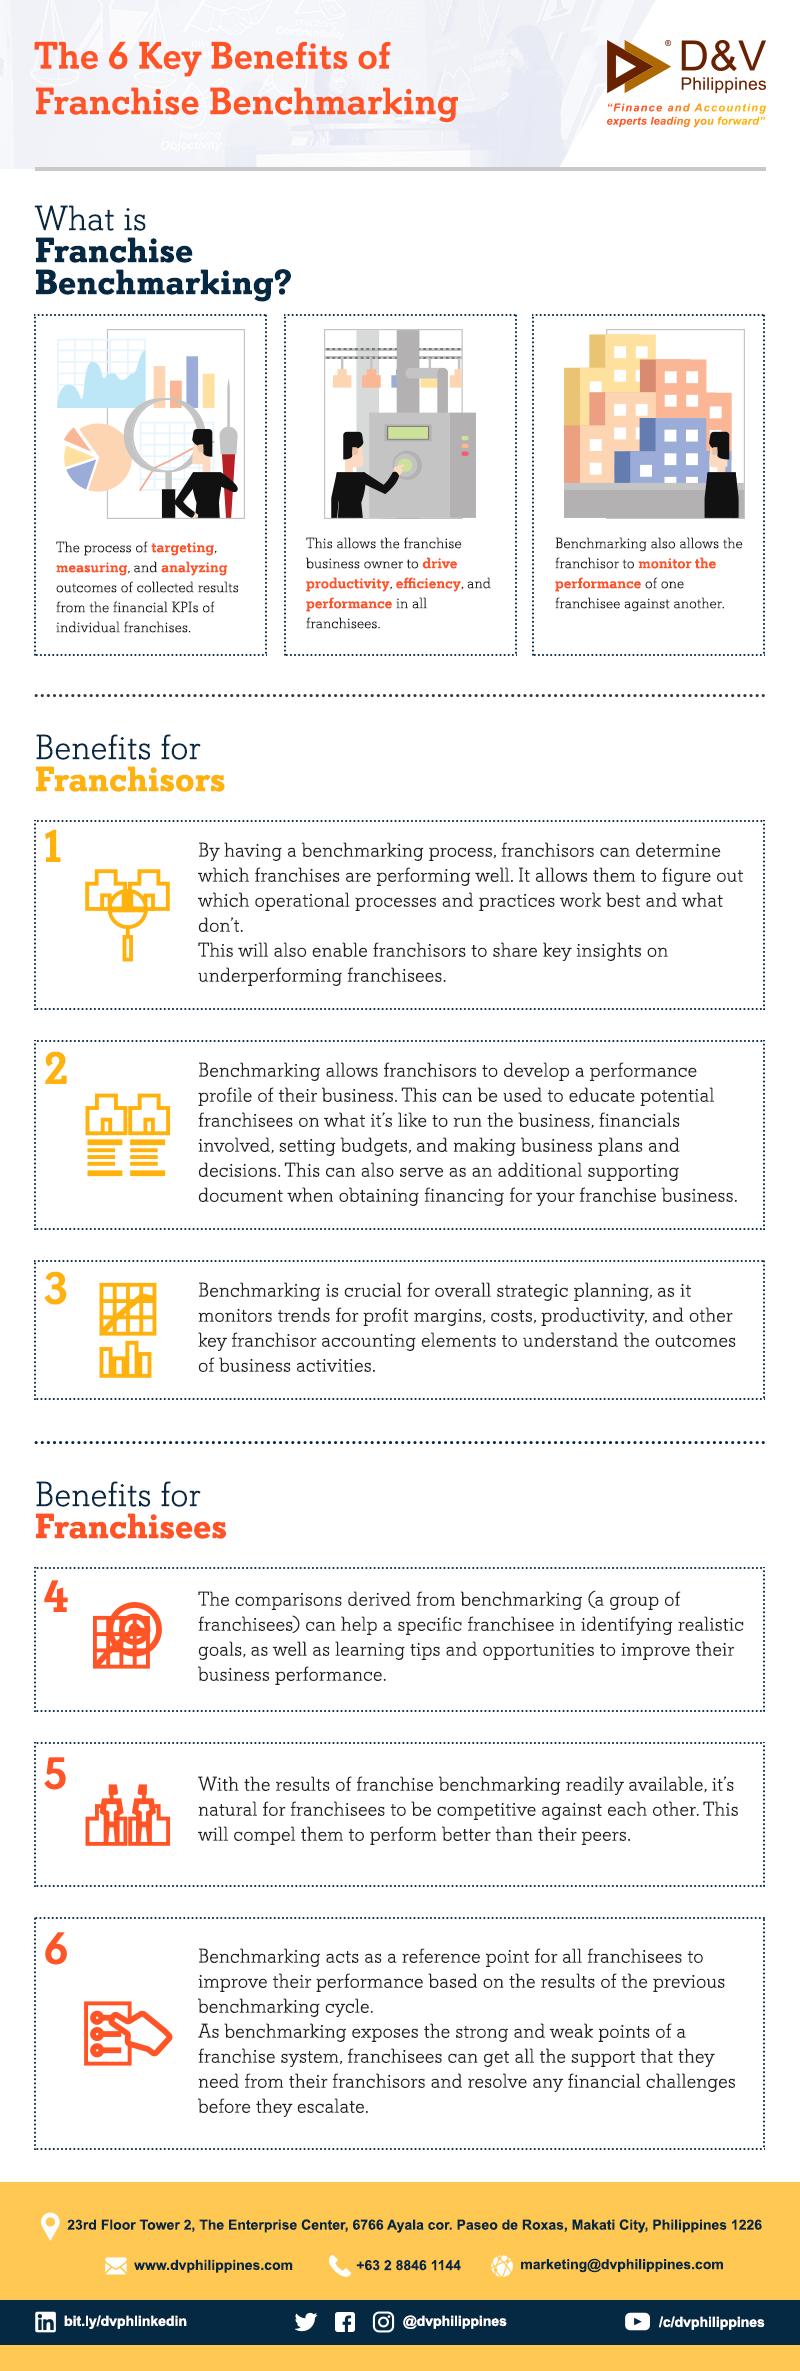 The 6 Key Benefits of Franchise Benchmarking